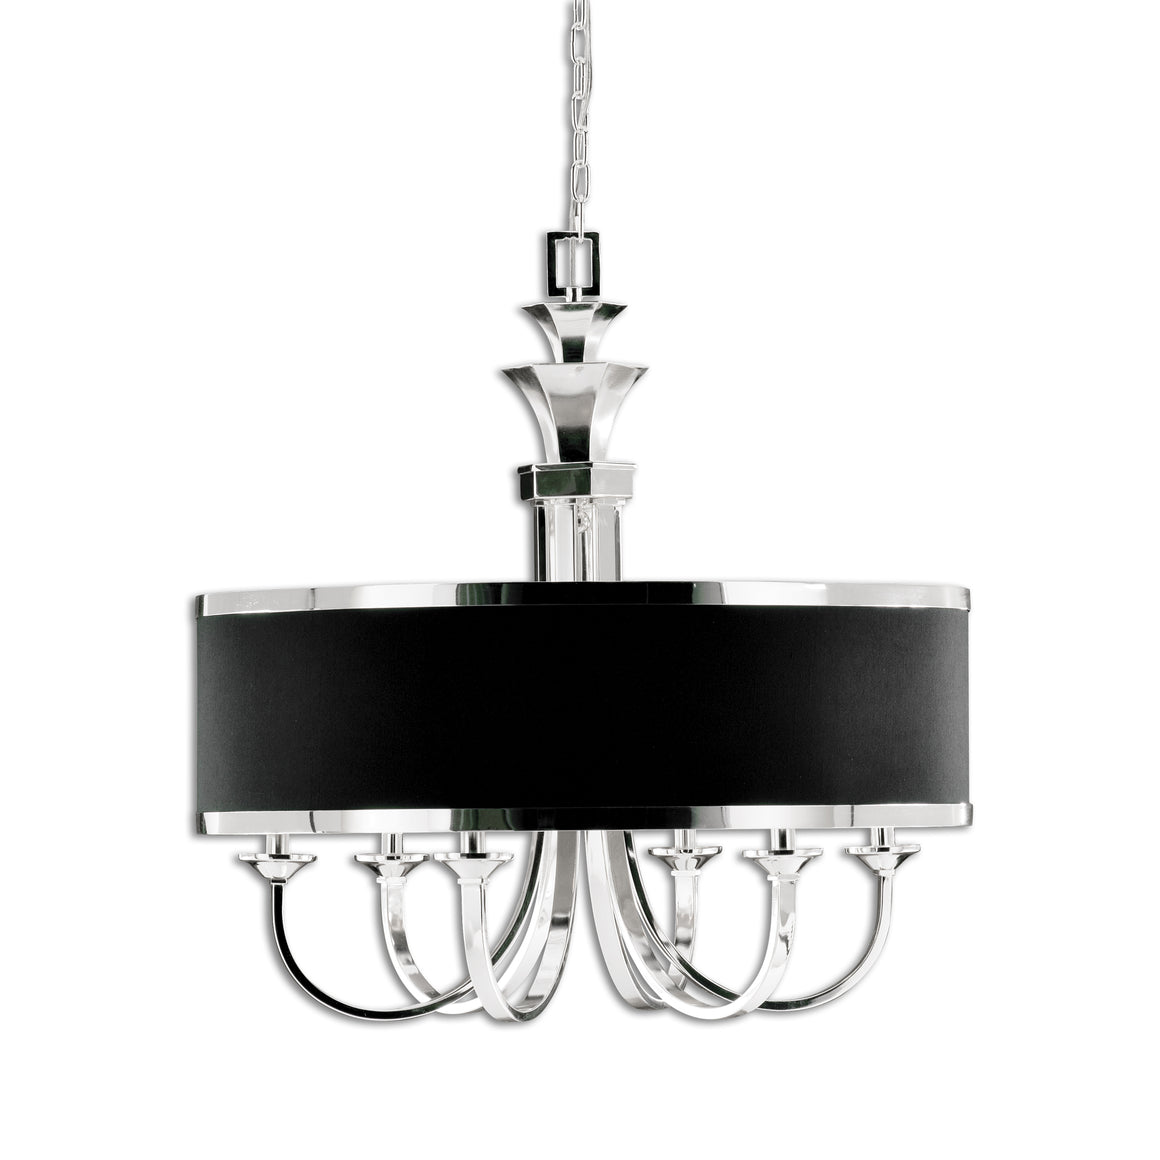 Tuxedo 6 Light Black Shade Chandelier